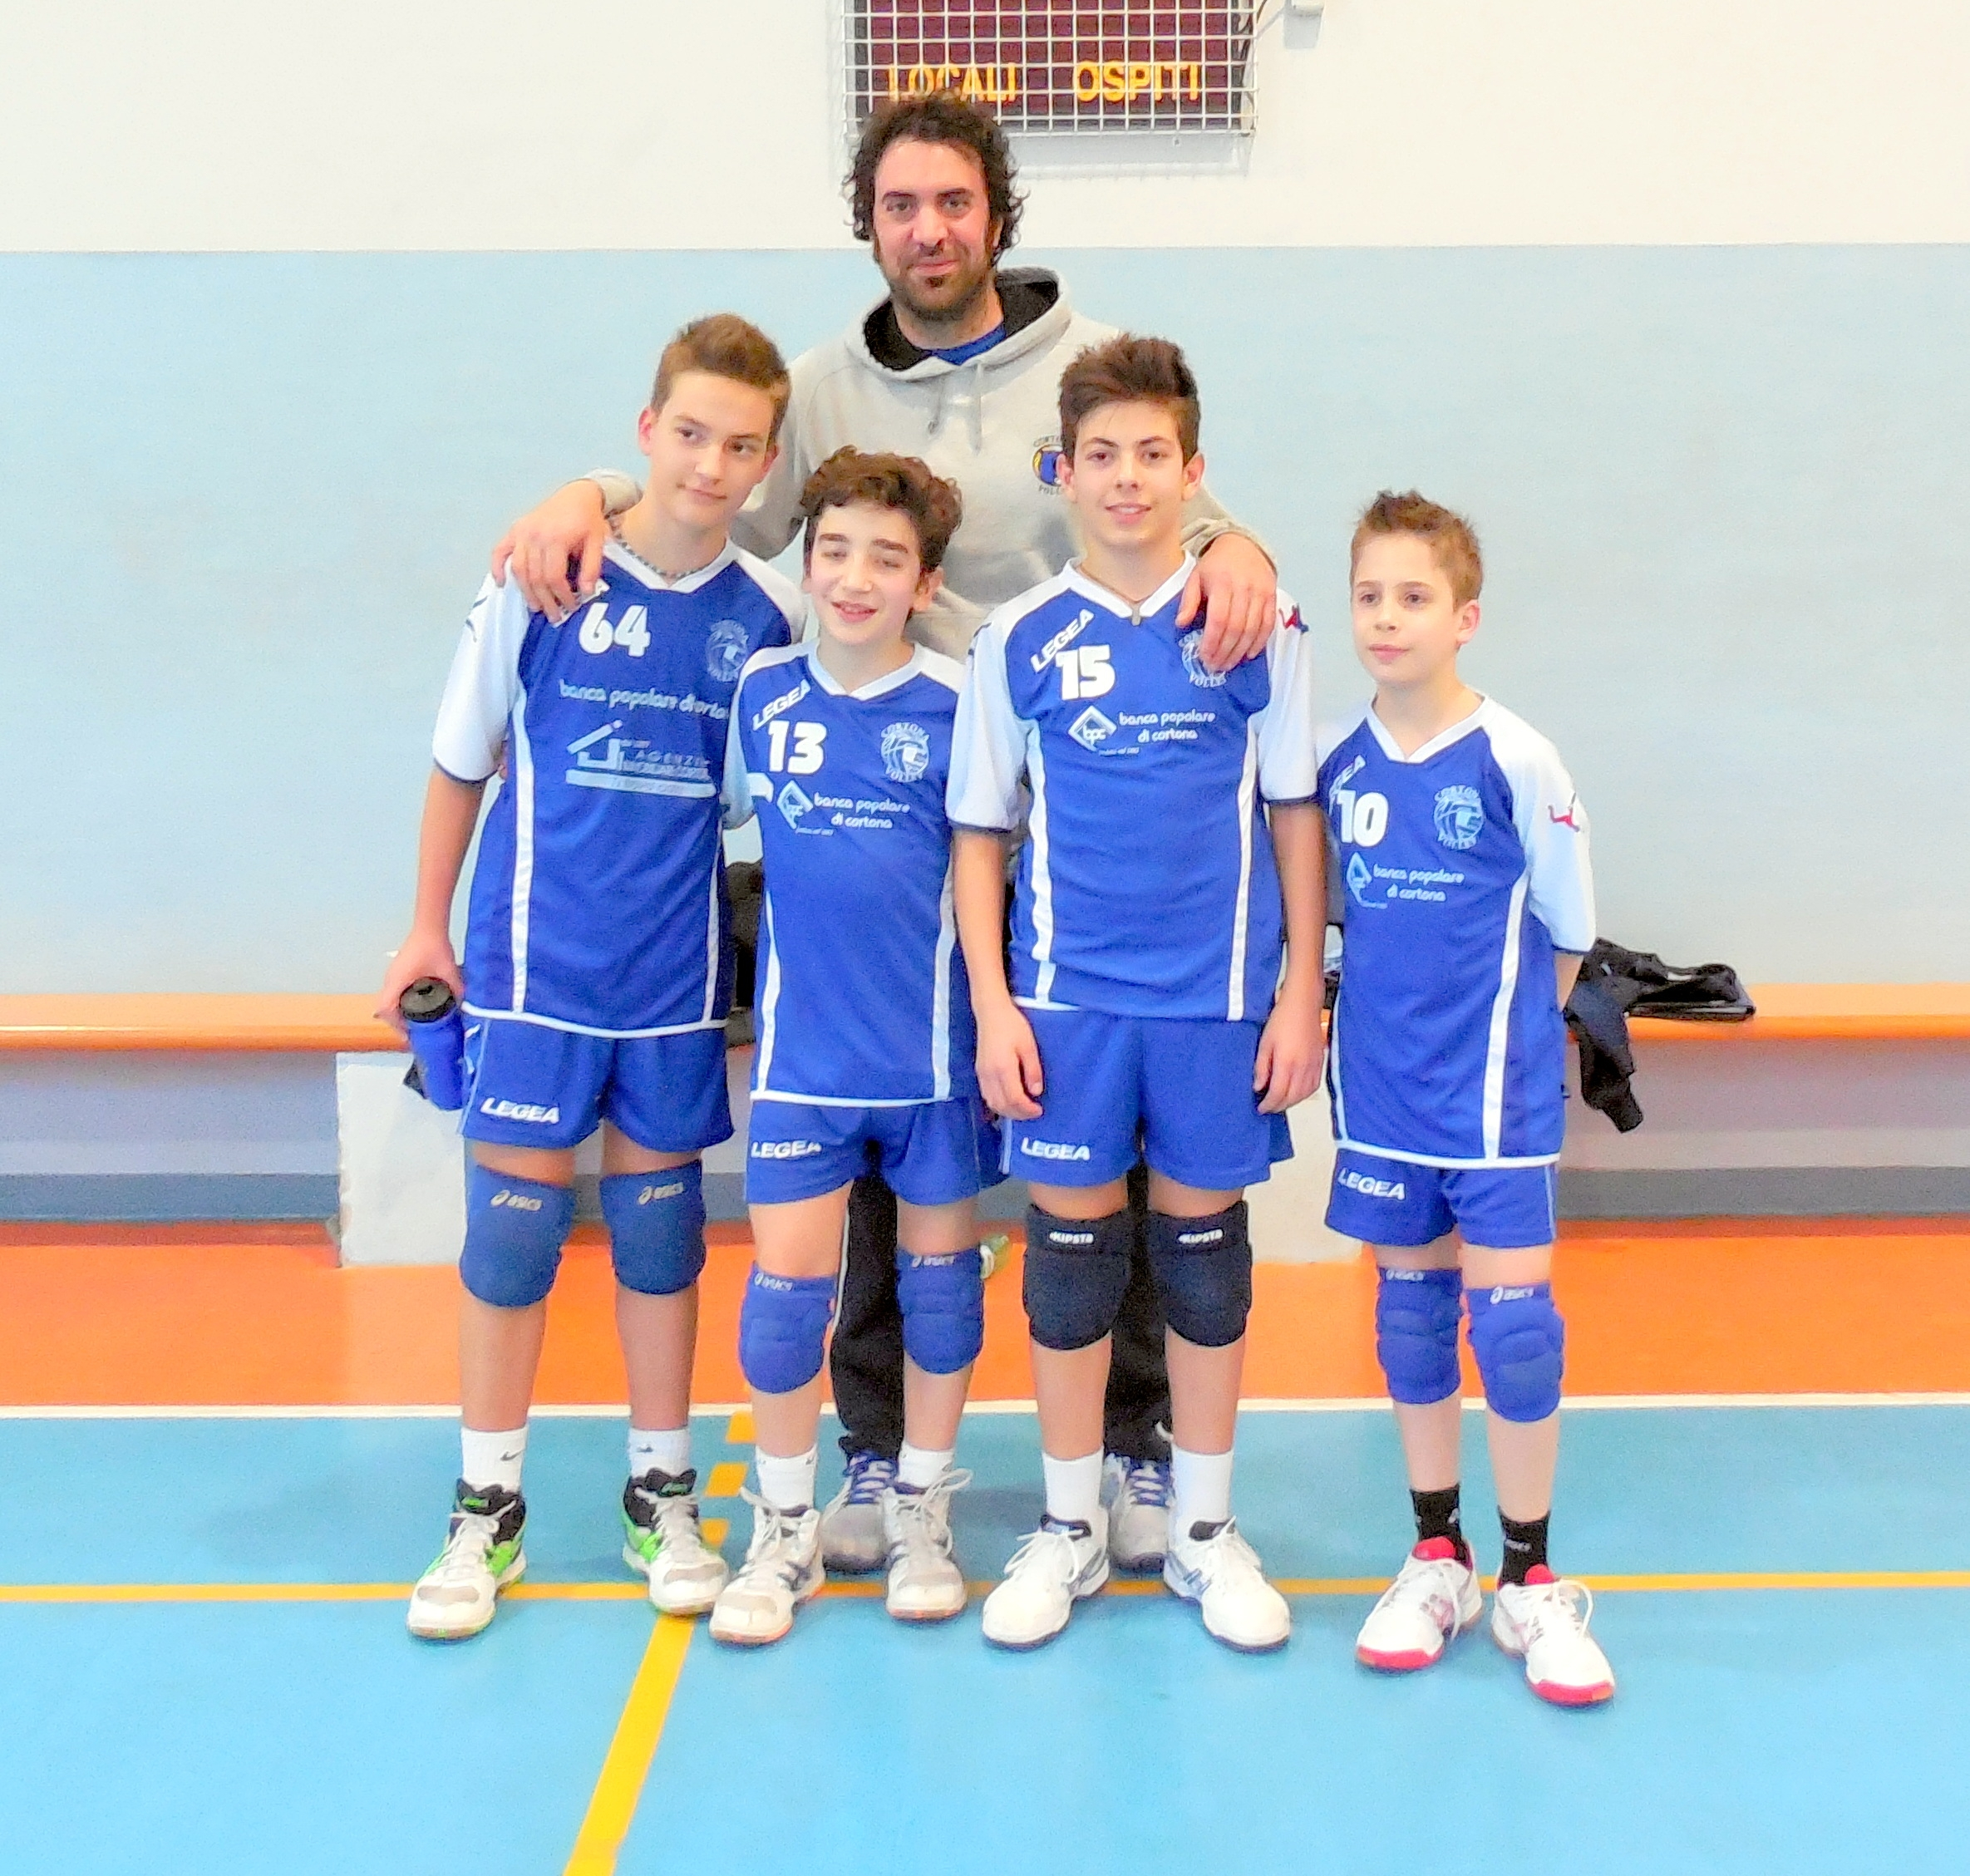 Under 13 del Cortona Volley campione interprovinciale